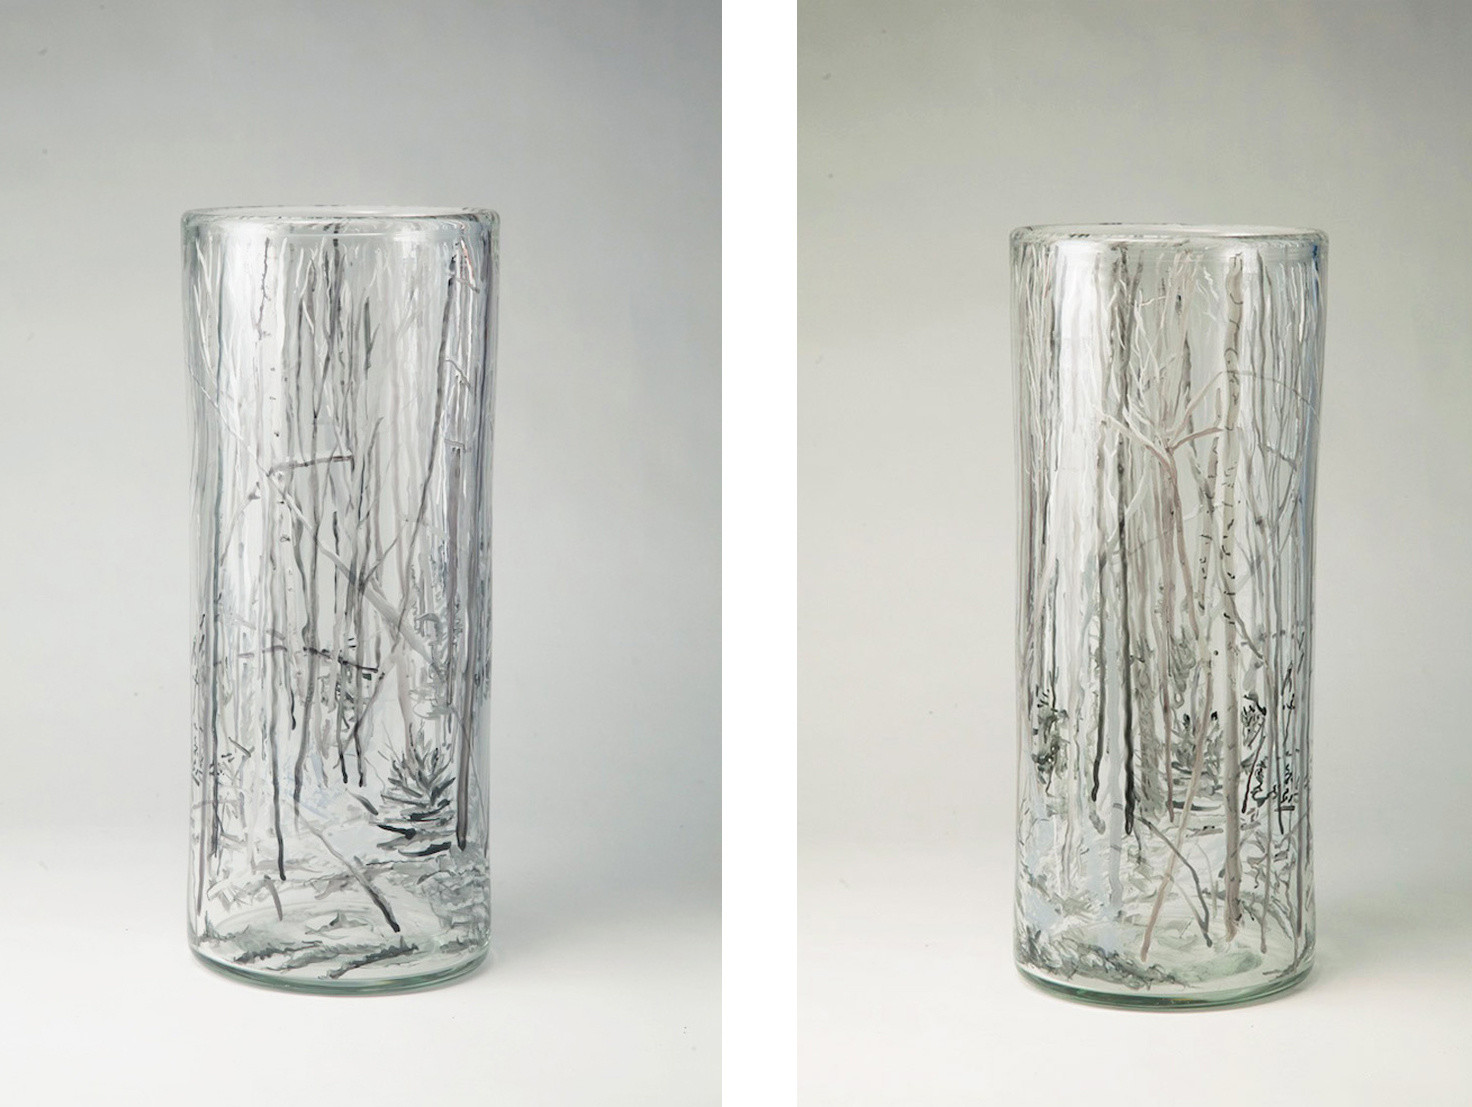 36 Glass Vase Of Glass Emily Brown with Regard to Woods with Birches